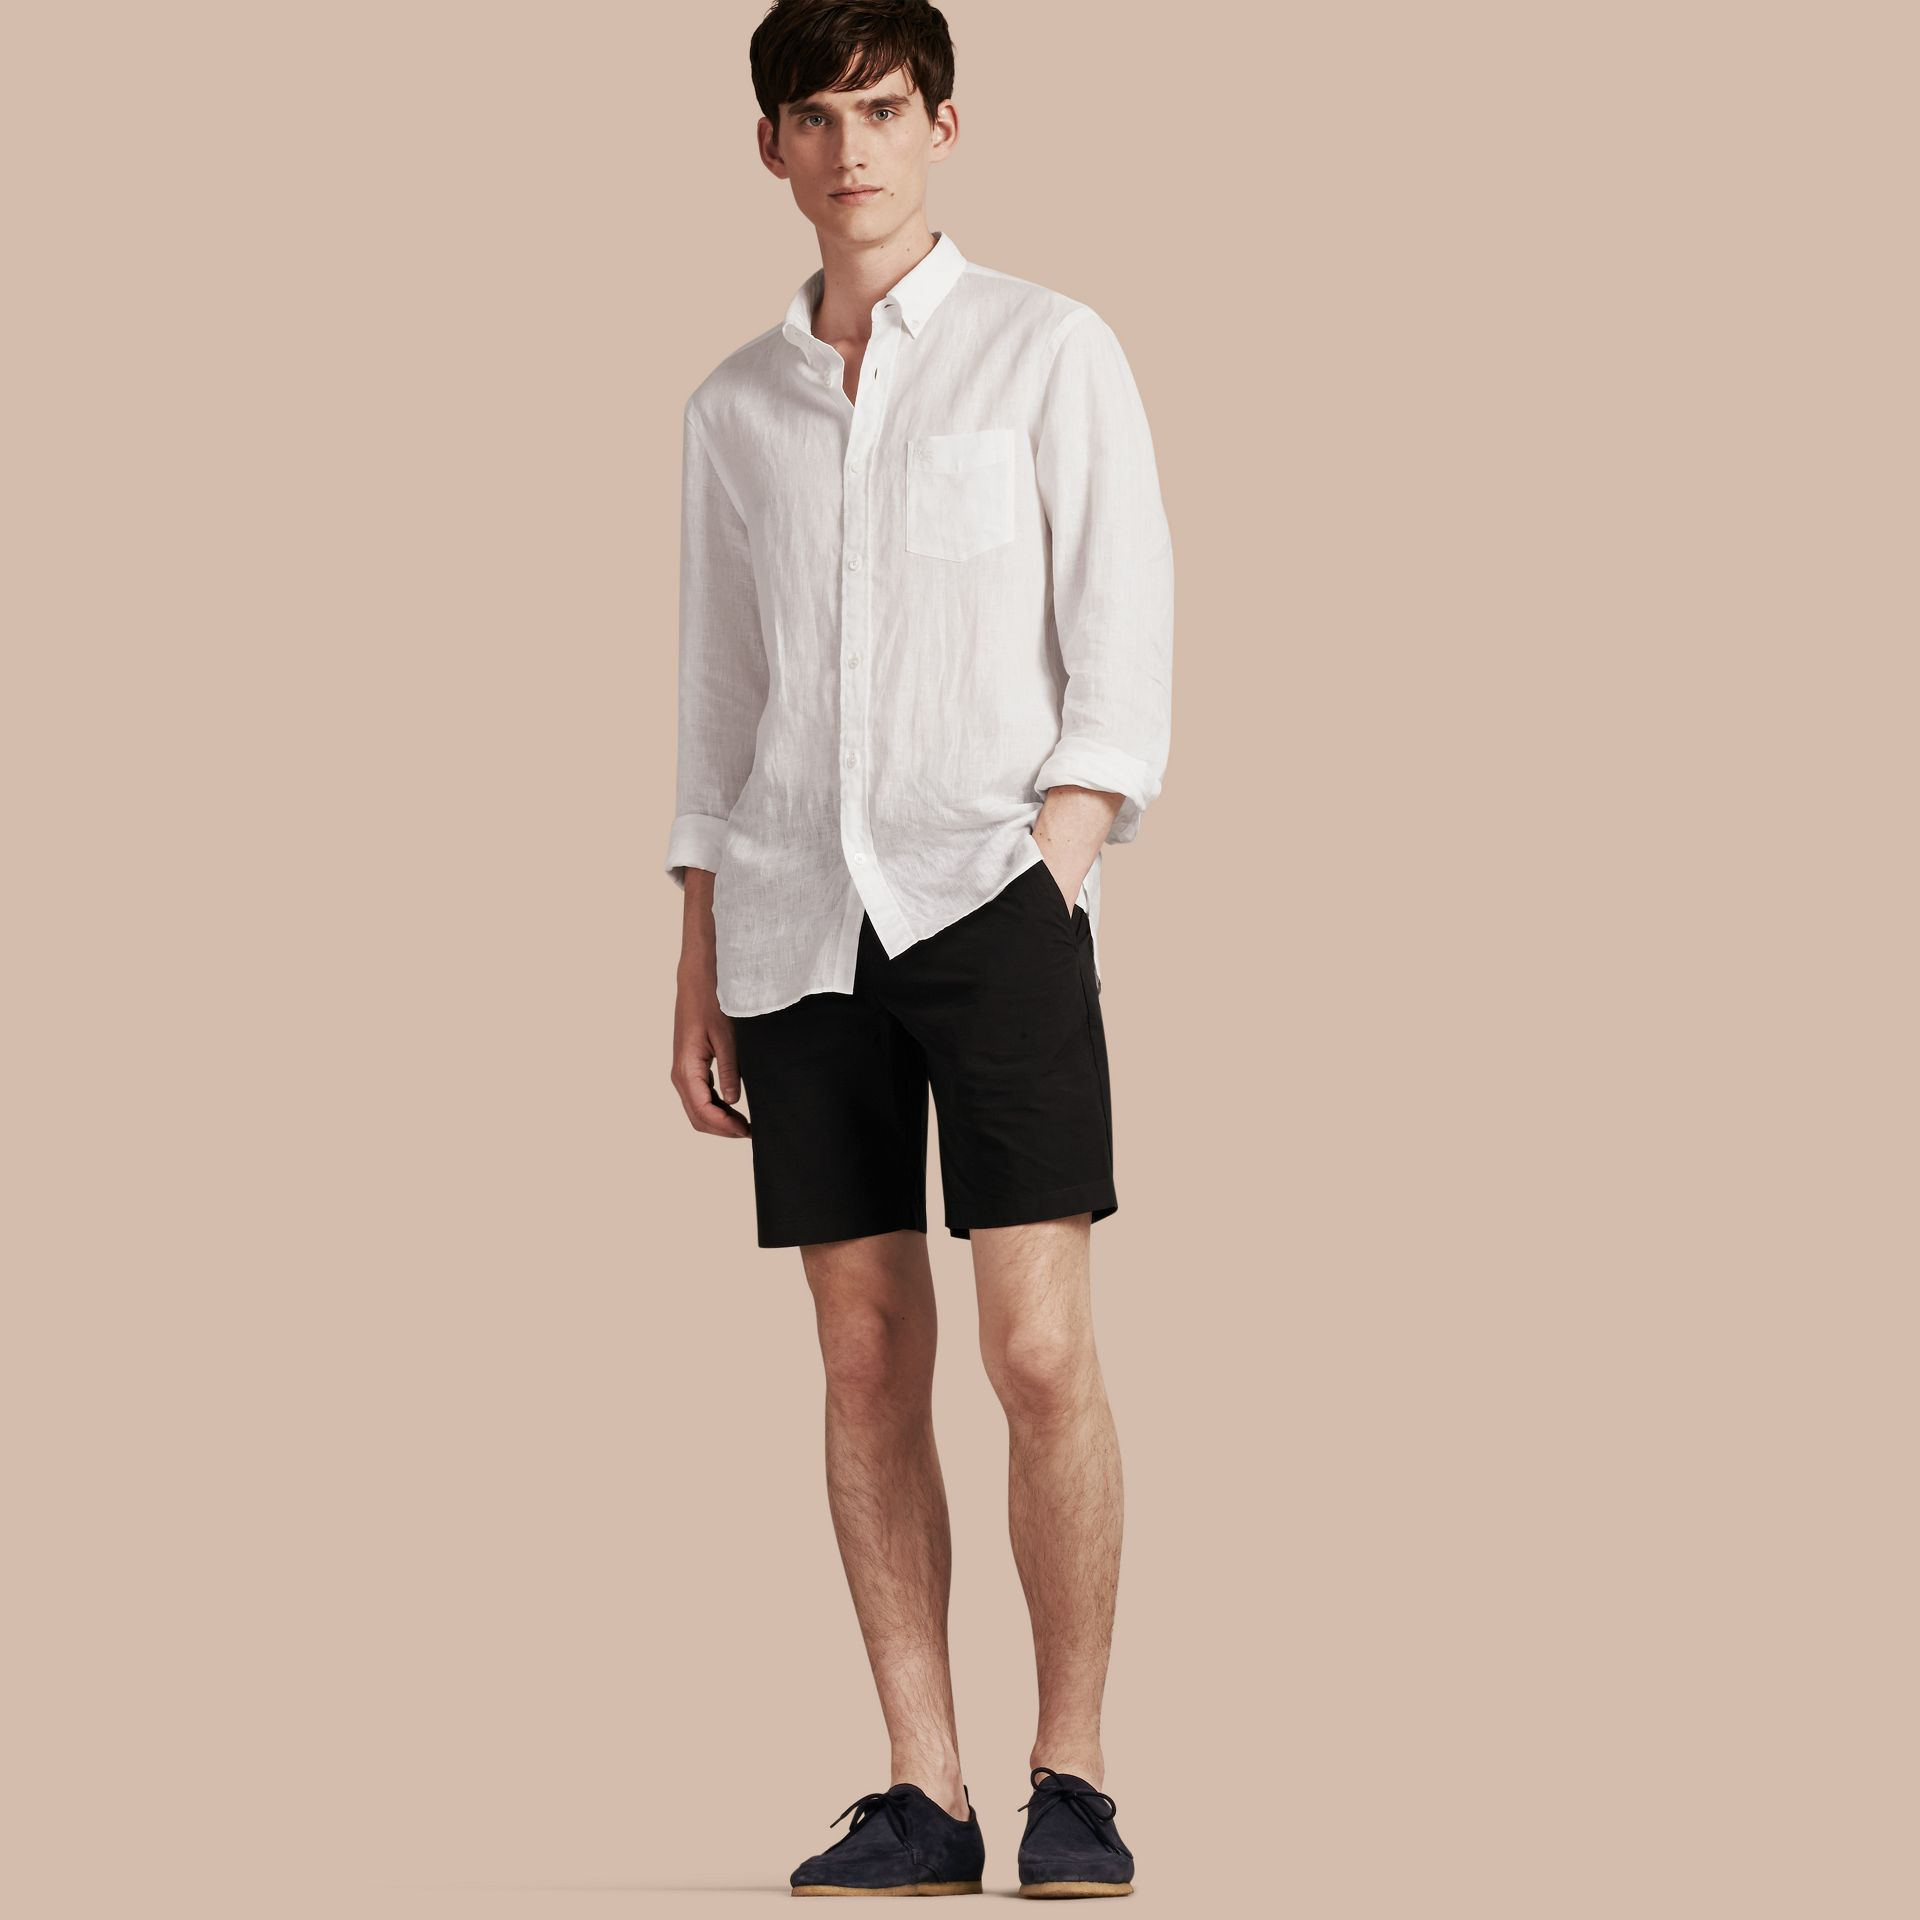 Cotton Poplin Chino Shorts in Black - Men | Burberry - gallery image 1